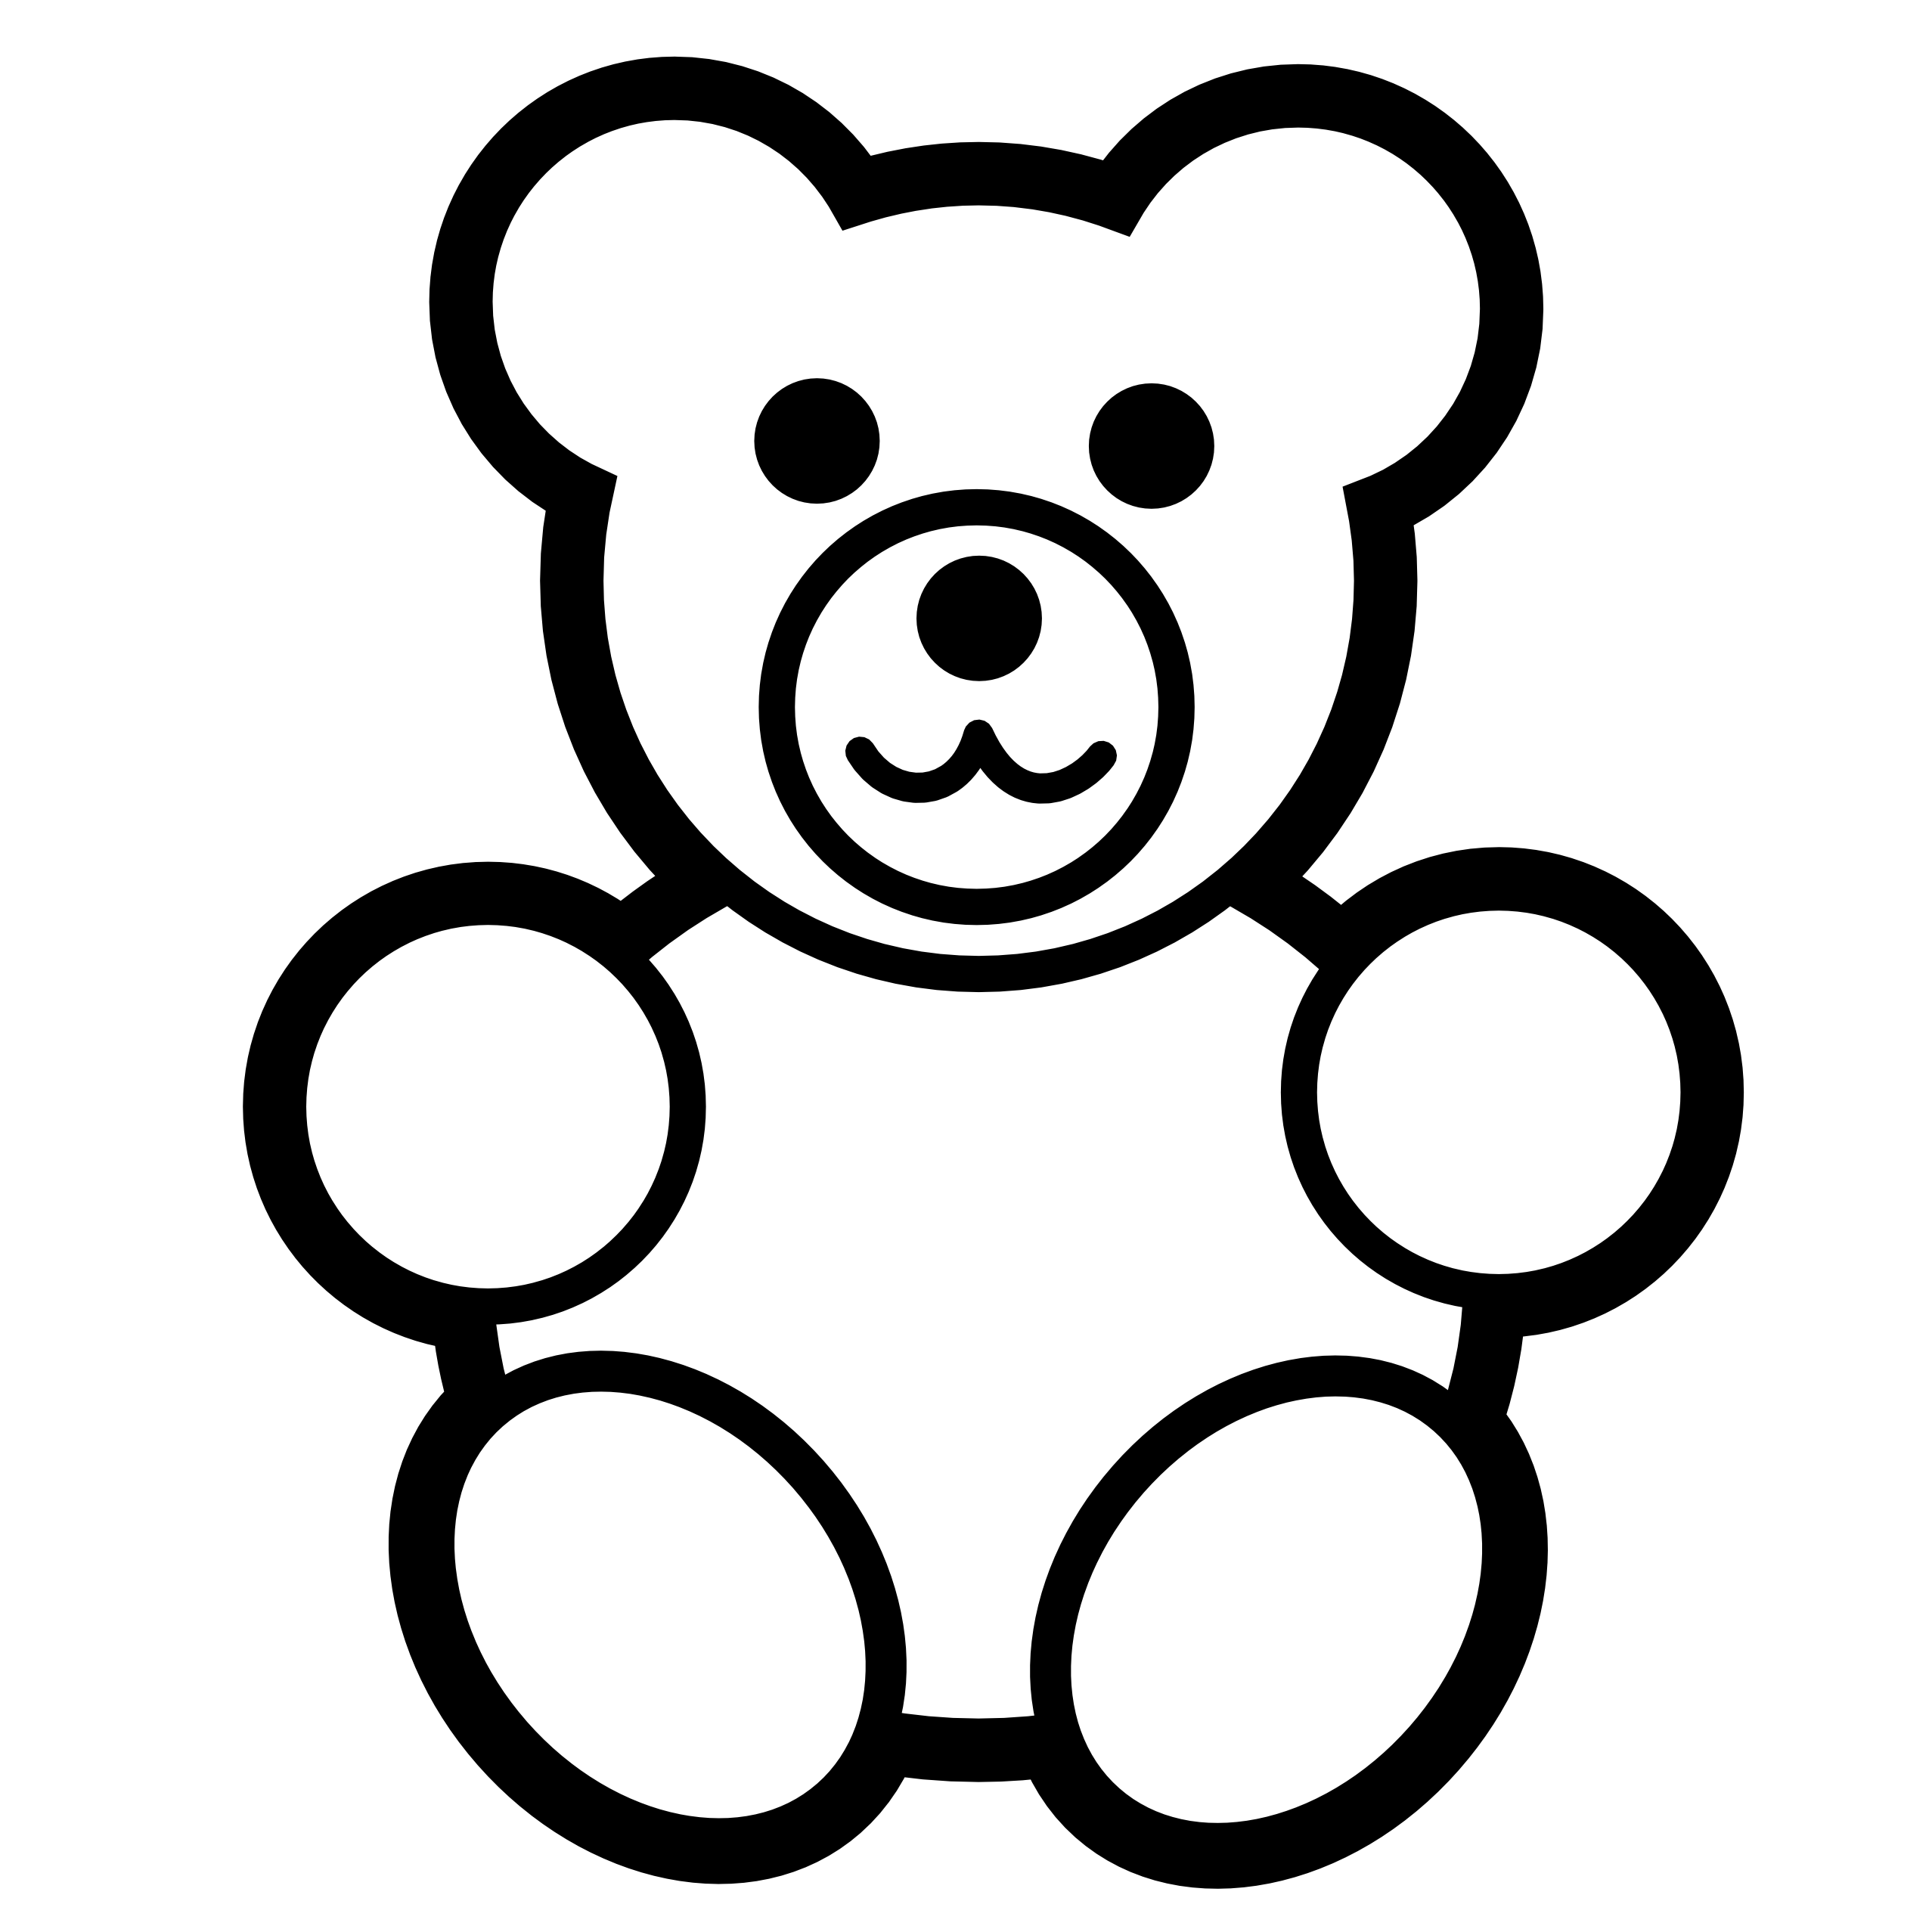 2555x2555 Teddy Bear Outline Clipart Free Images